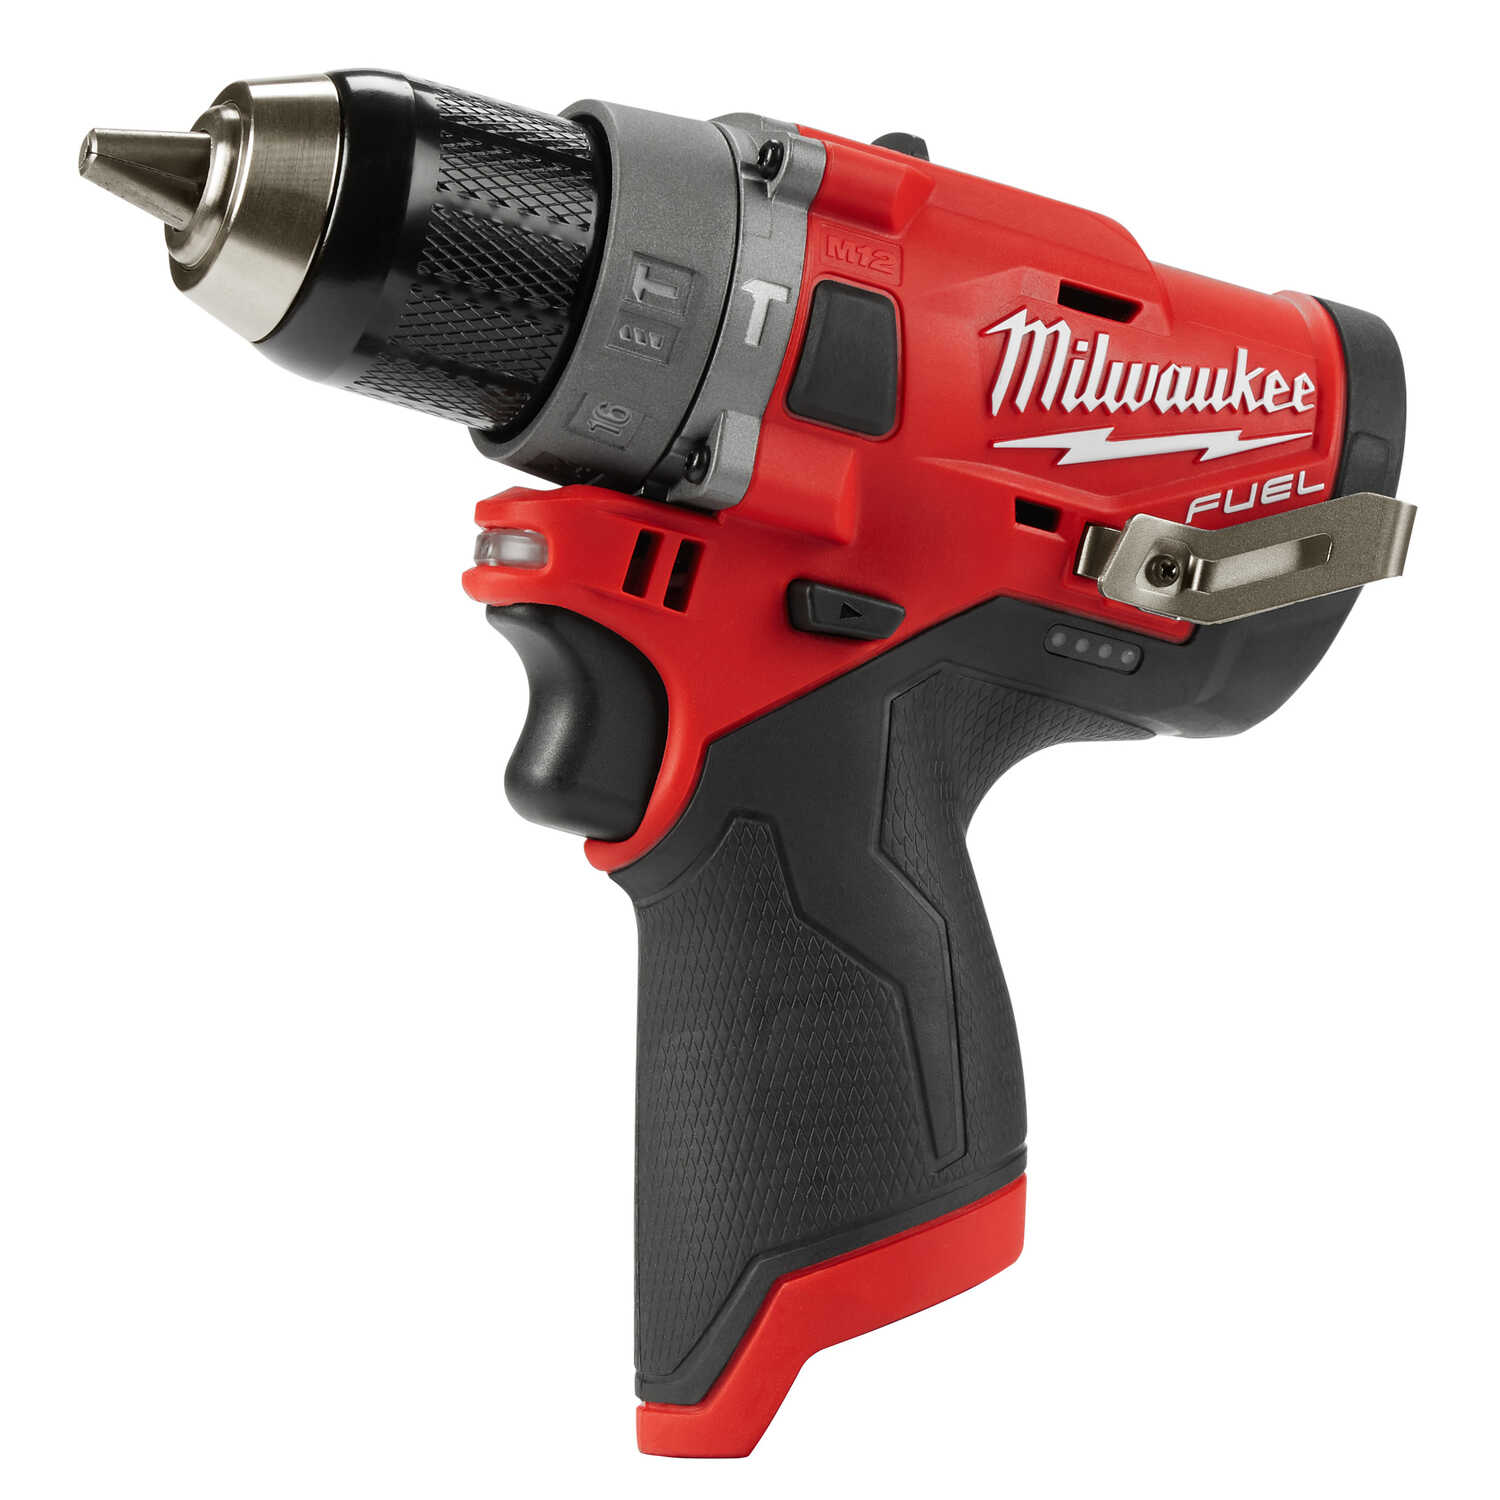 Milwaukee  M12 FUEL  12 volt Brushless  Cordless Hammer Drill/Driver  Bare Tool  1/2 in. Ratcheting